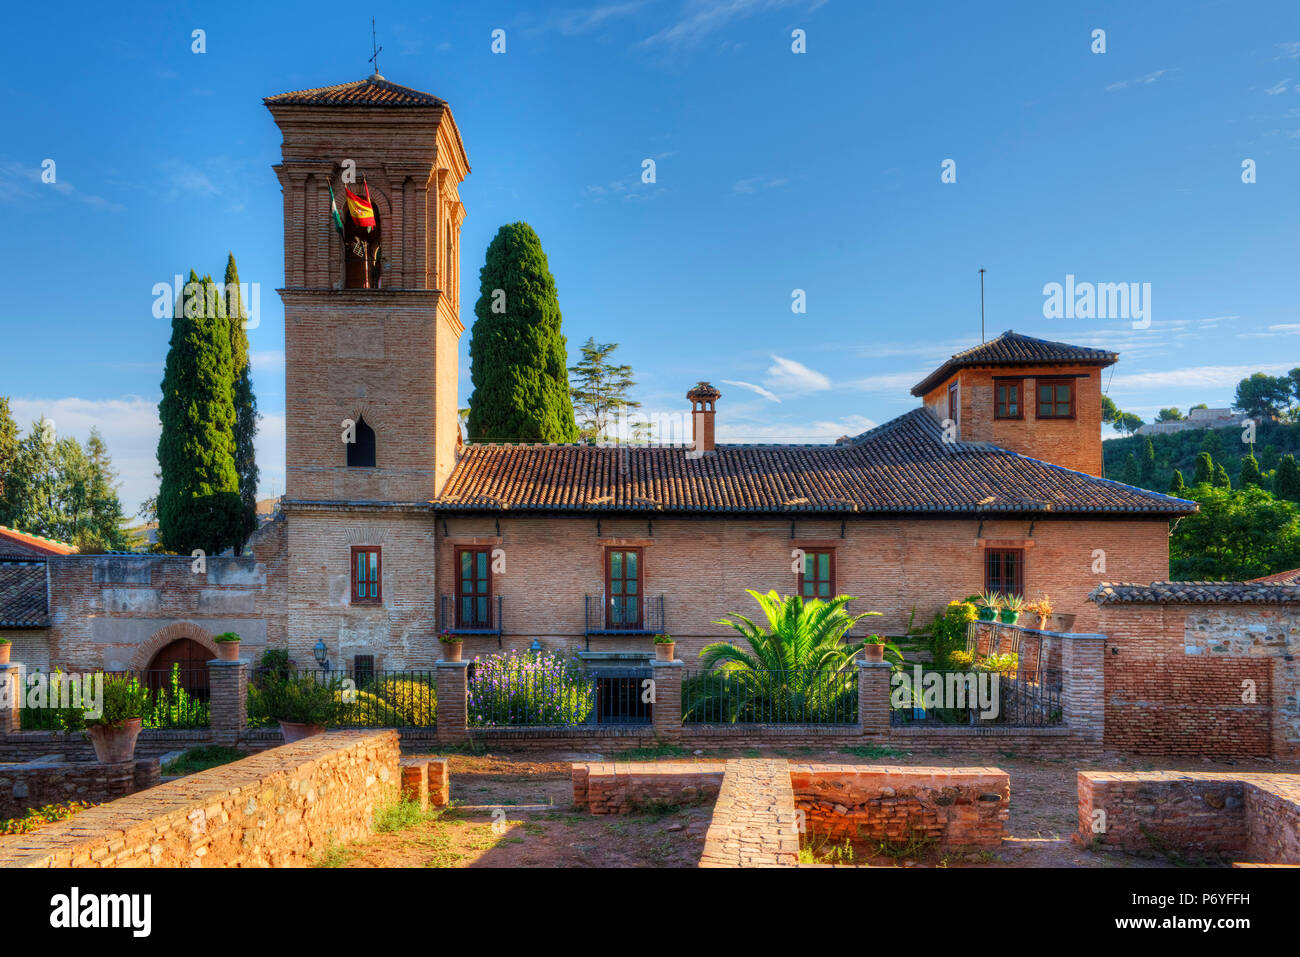 Convent of San Francisco, Alhambra, UNESCO World Heritage Site, Granada, Spain - Stock Image